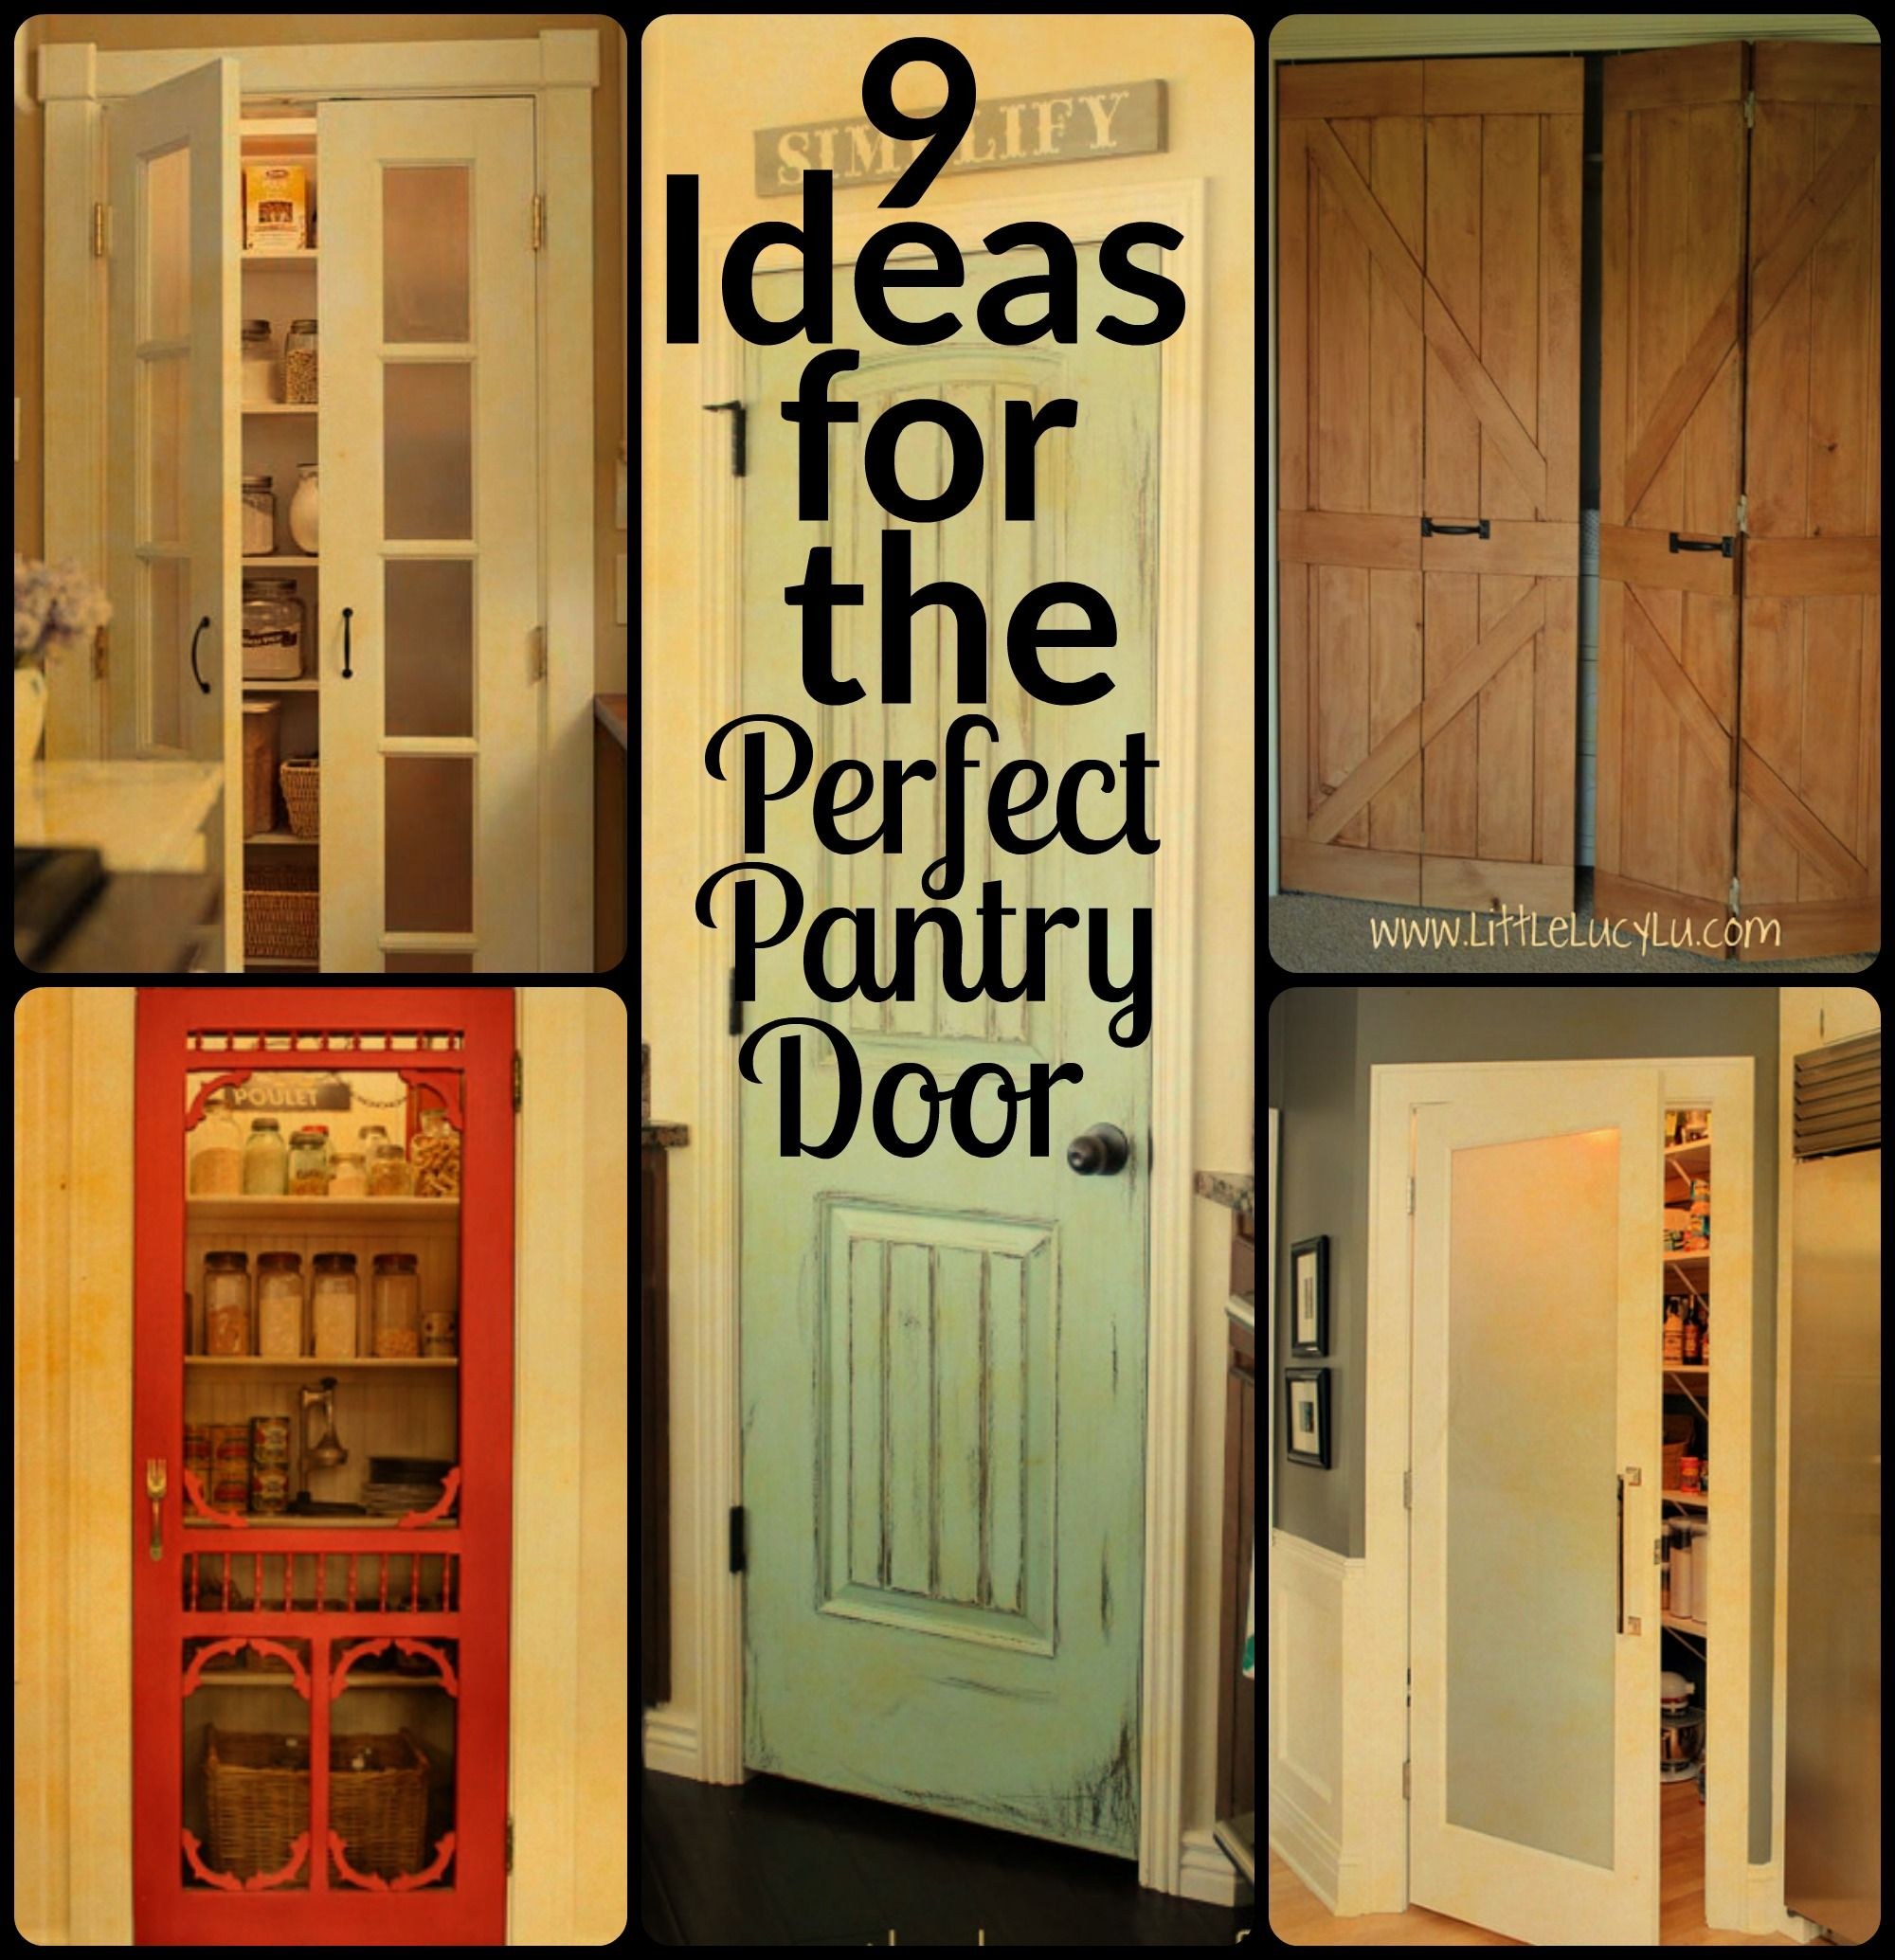 9 Ideas for the Perfect Pantry Door …   Pantry P…